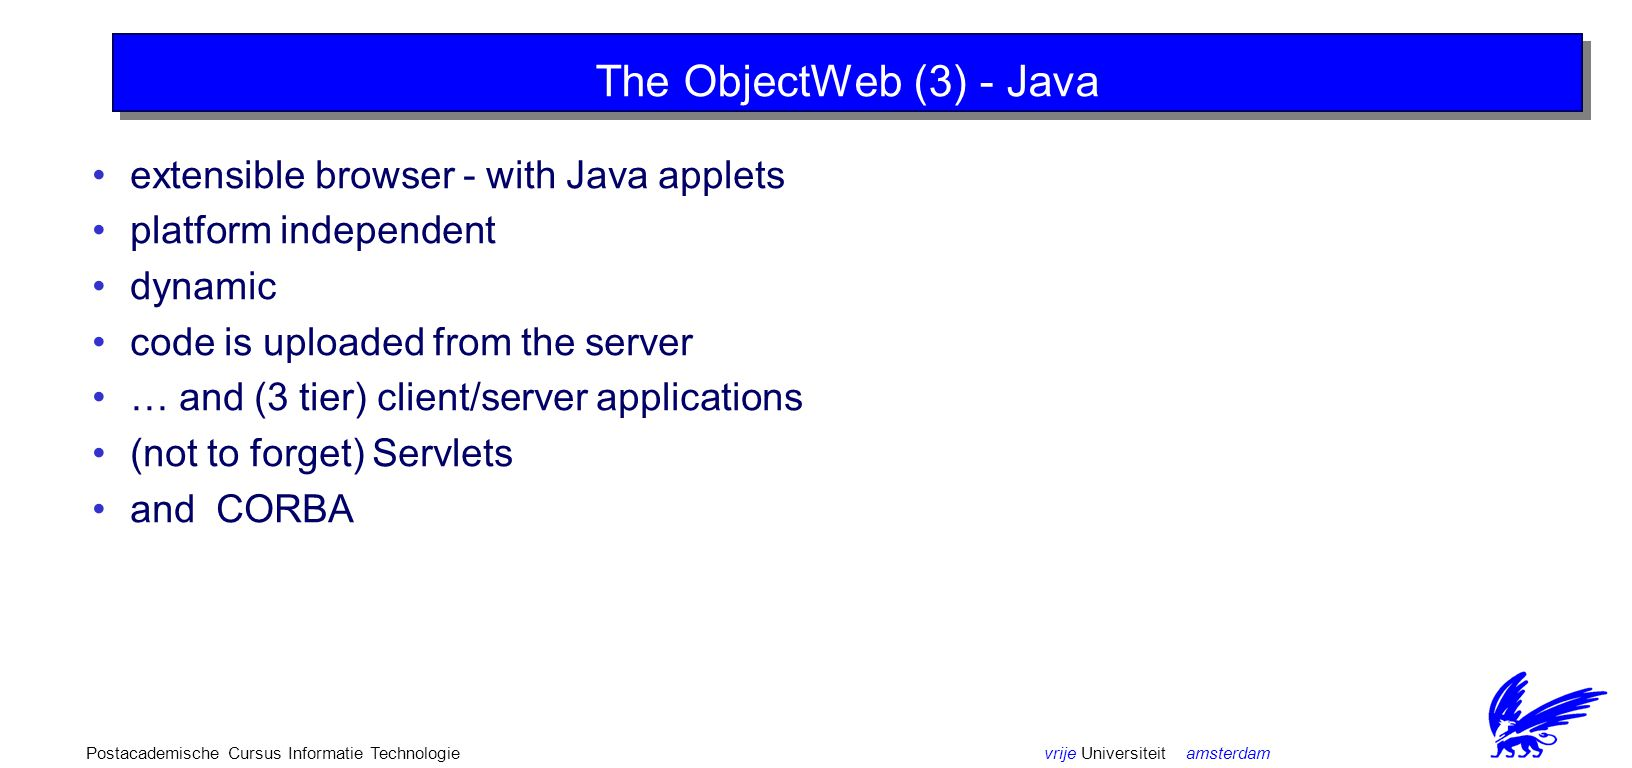 vrije Universiteit amsterdamPostacademische Cursus Informatie Technologie The ObjectWeb (3) - Java extensible browser - with Java applets platform independent dynamic code is uploaded from the server … and (3 tier) client/server applications (not to forget) Servlets and CORBA